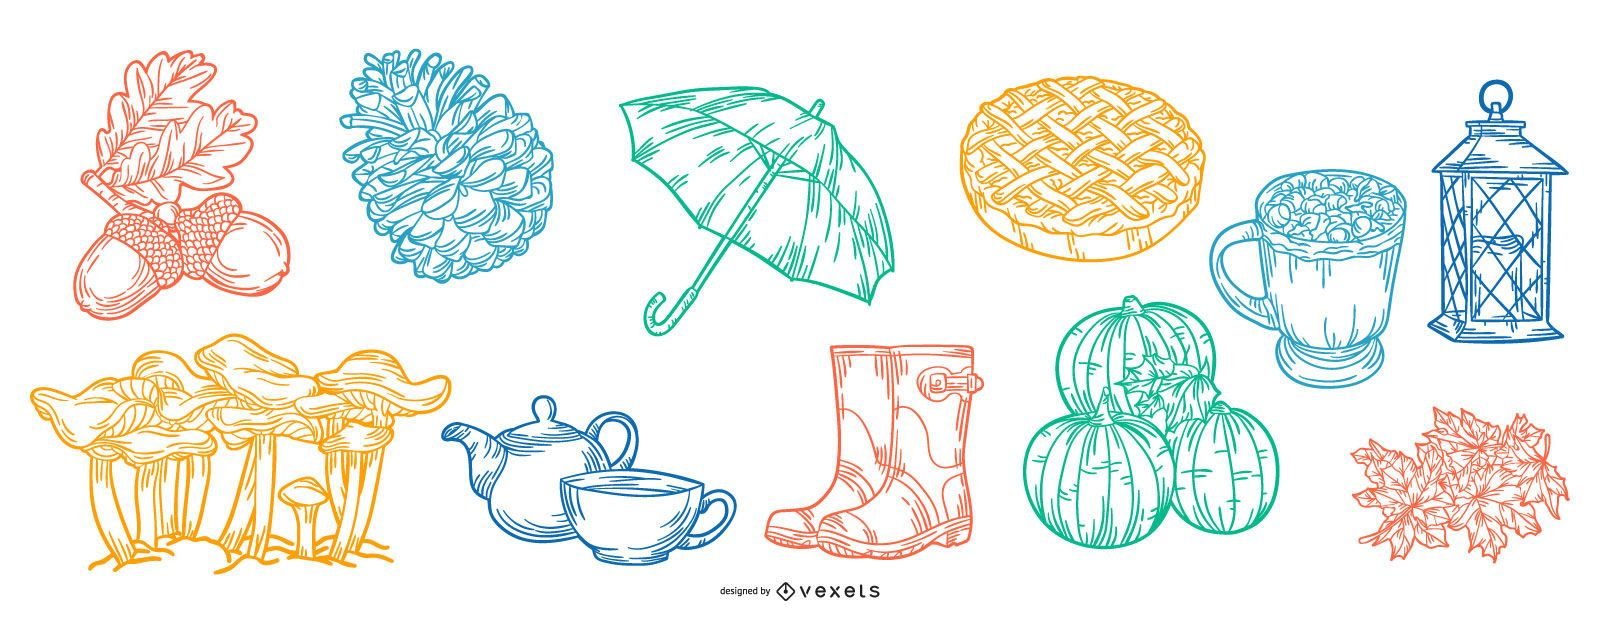 Fall Elements Stroke Illustration Collection